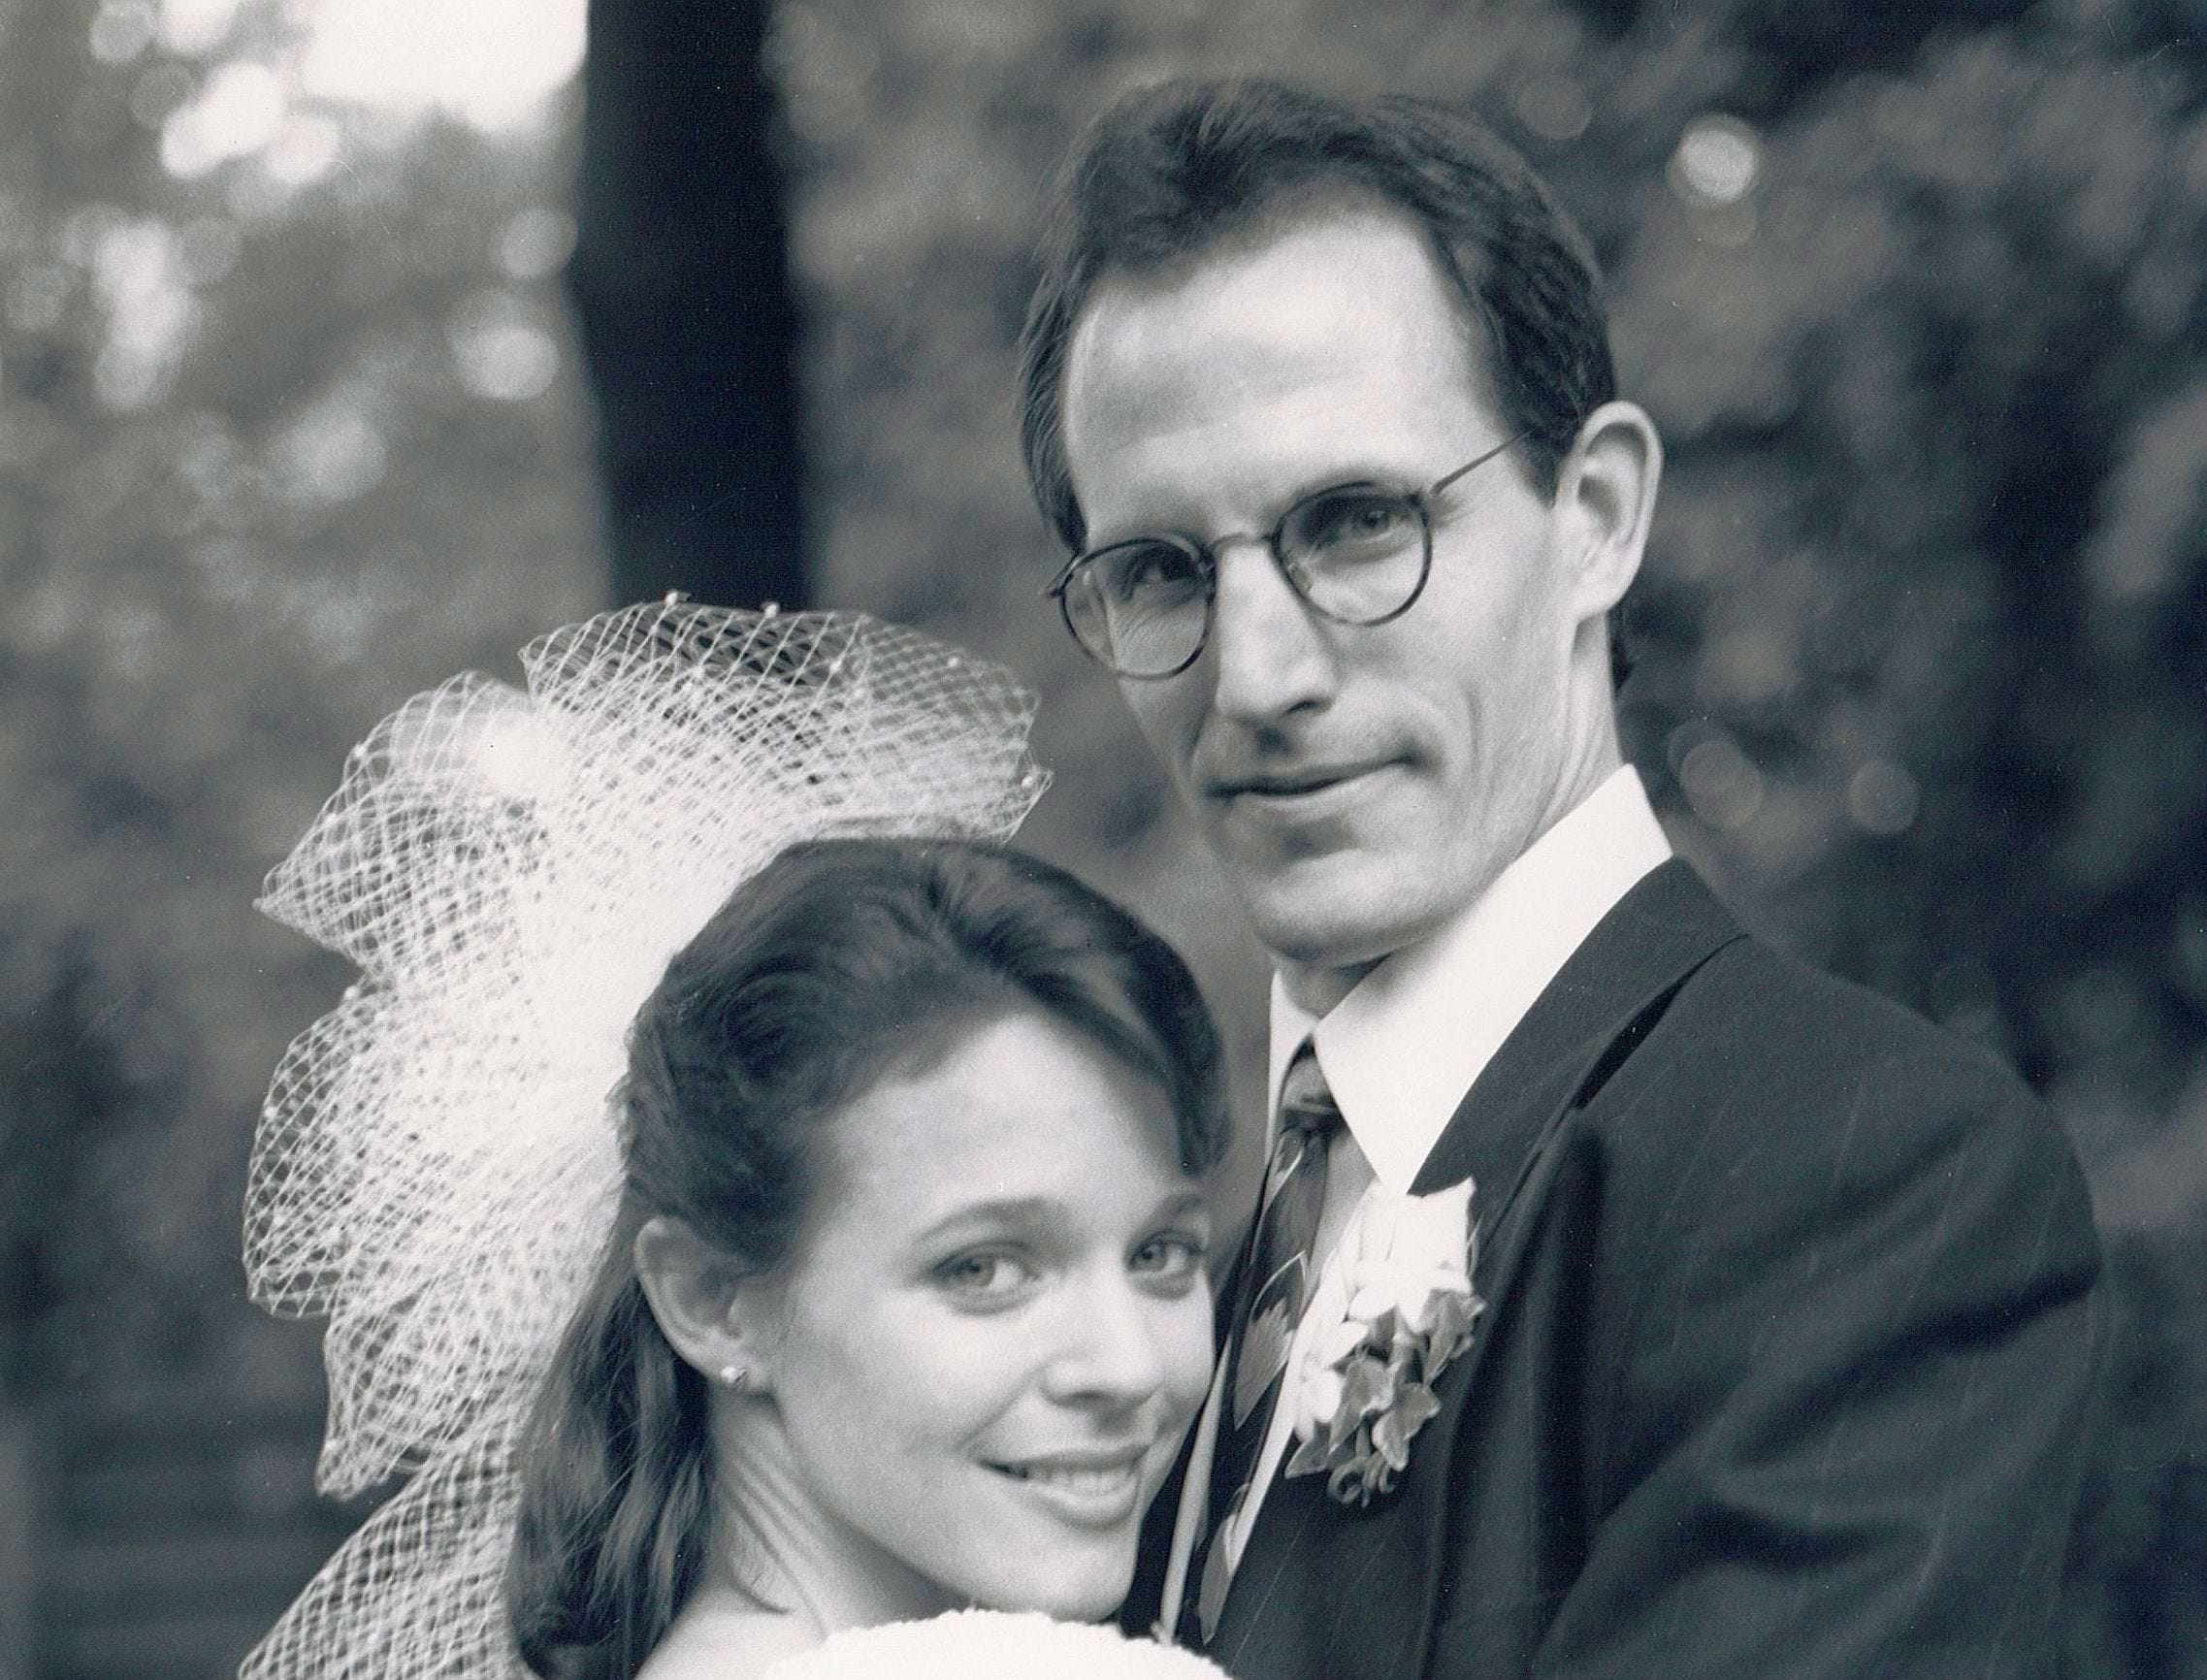 Kim Crosby and her husband, Robert Westenberg, on their wedding day.